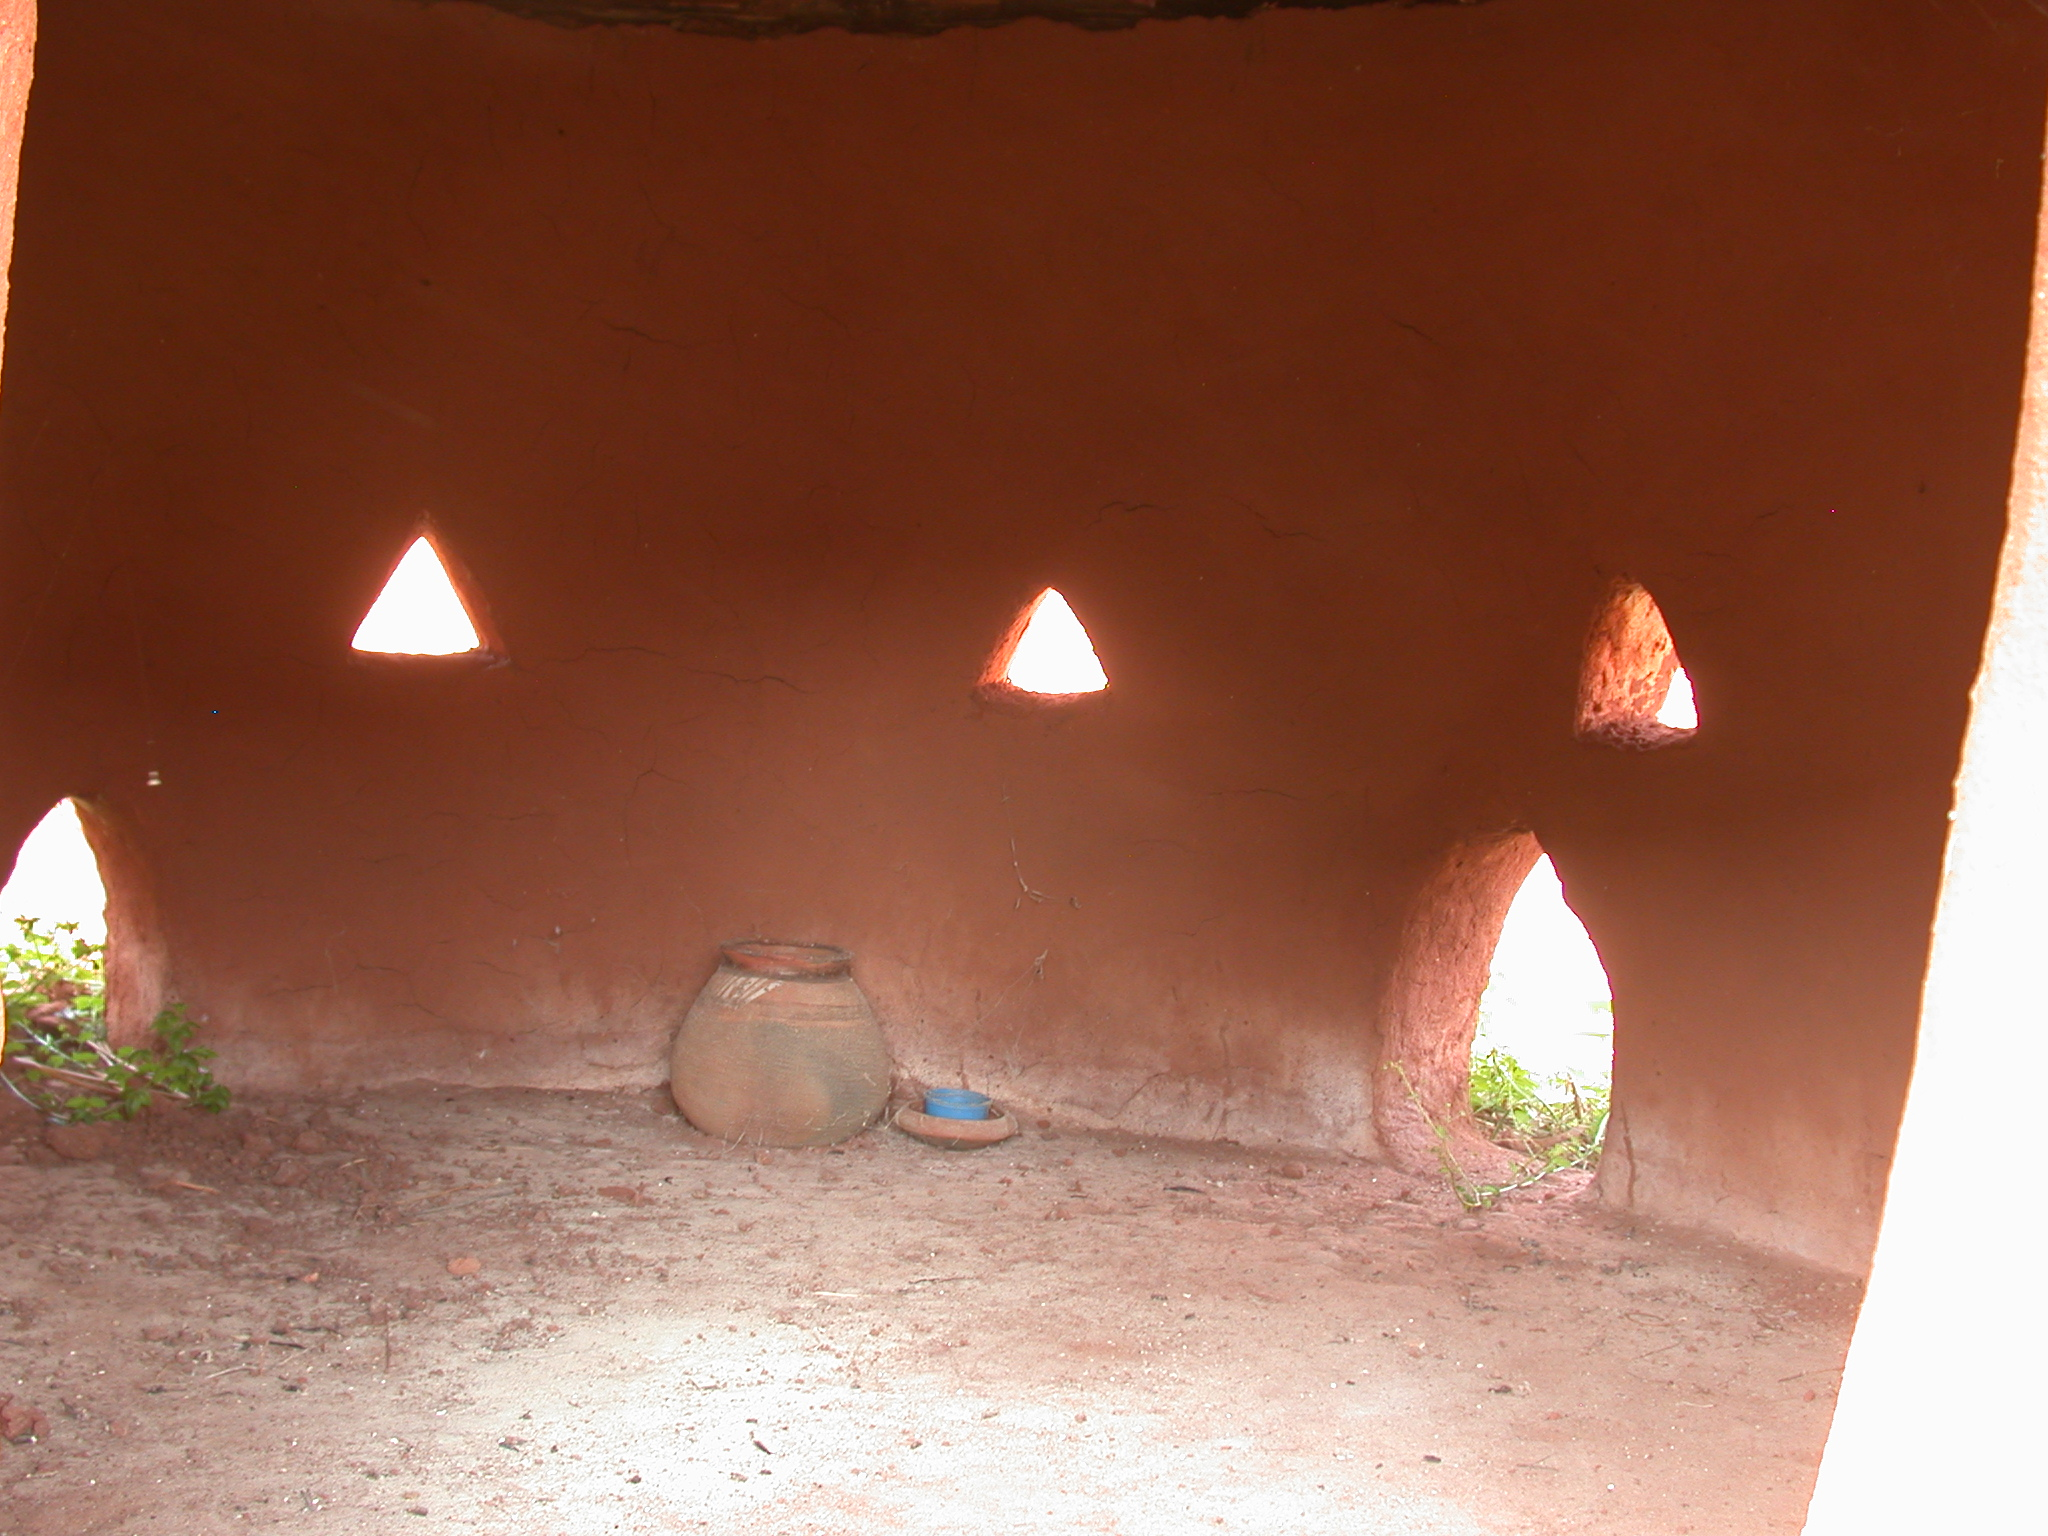 Interior of Reconstructed Hut With Triangular Windows and Clay Pot, Palace of King Houegbadja, Abomey, Benin